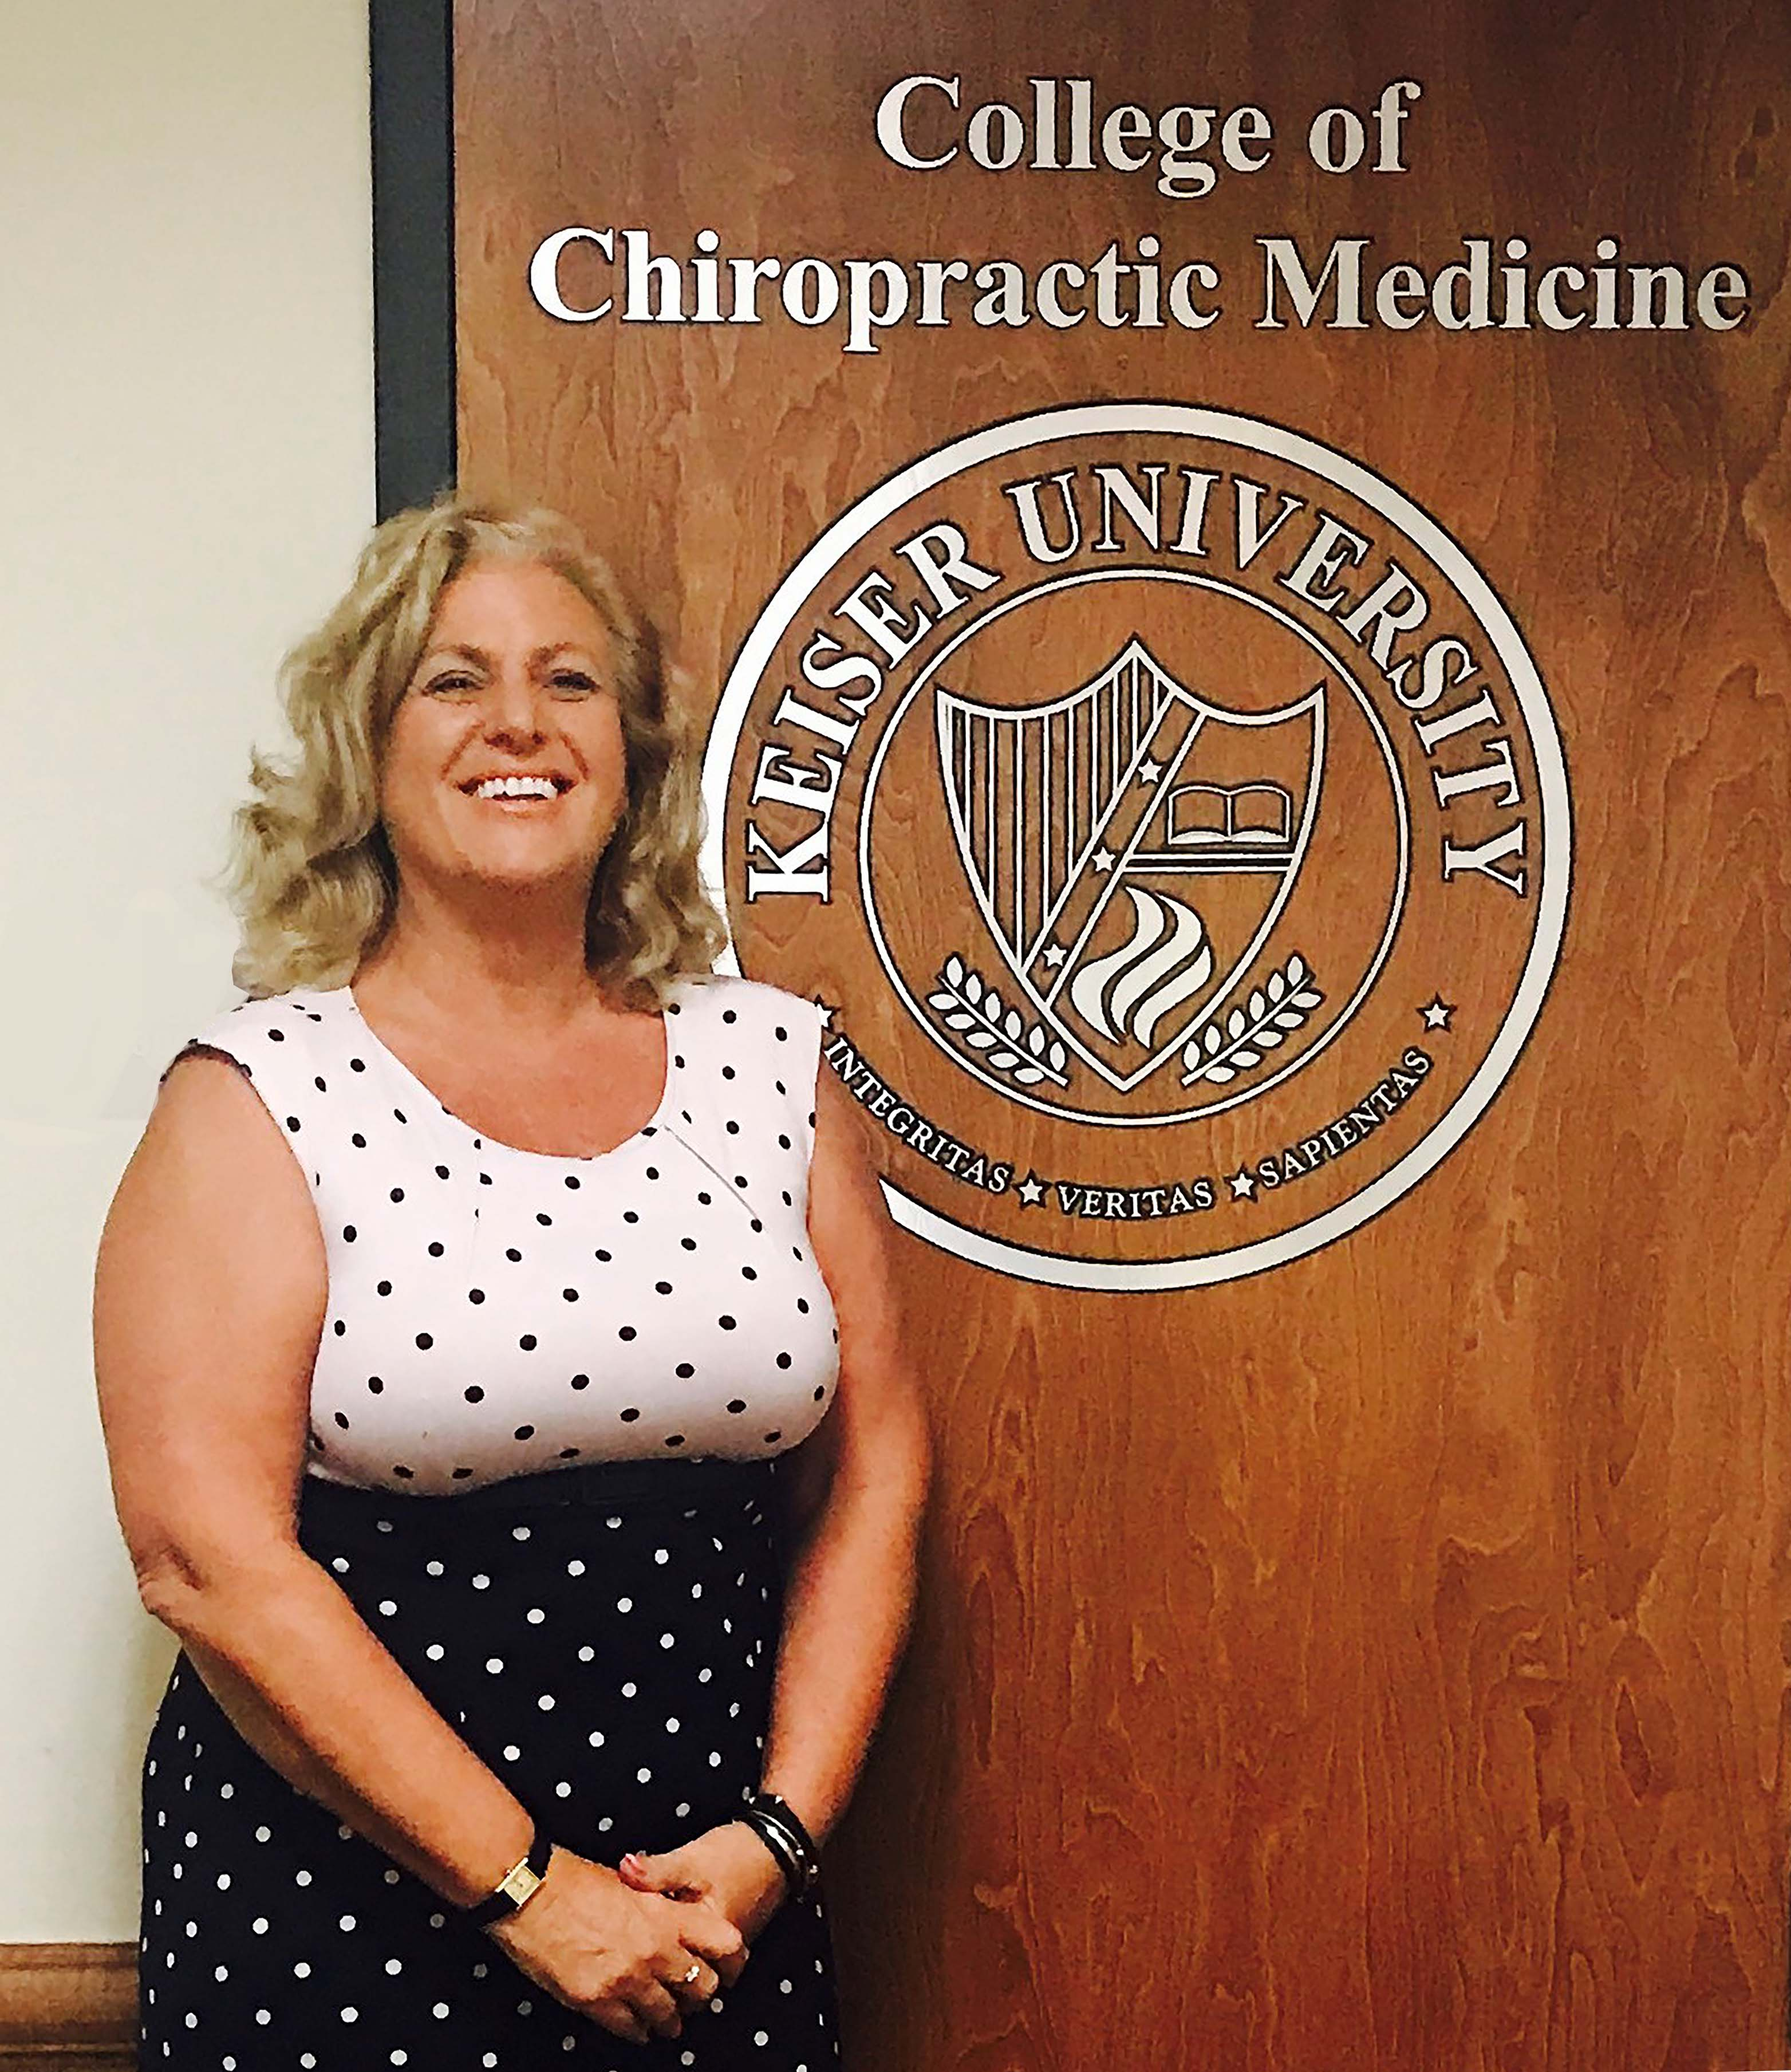 KU Professor Weighs-In on the Benefits of Chiropractic Medicine as an Alternative to Opioids